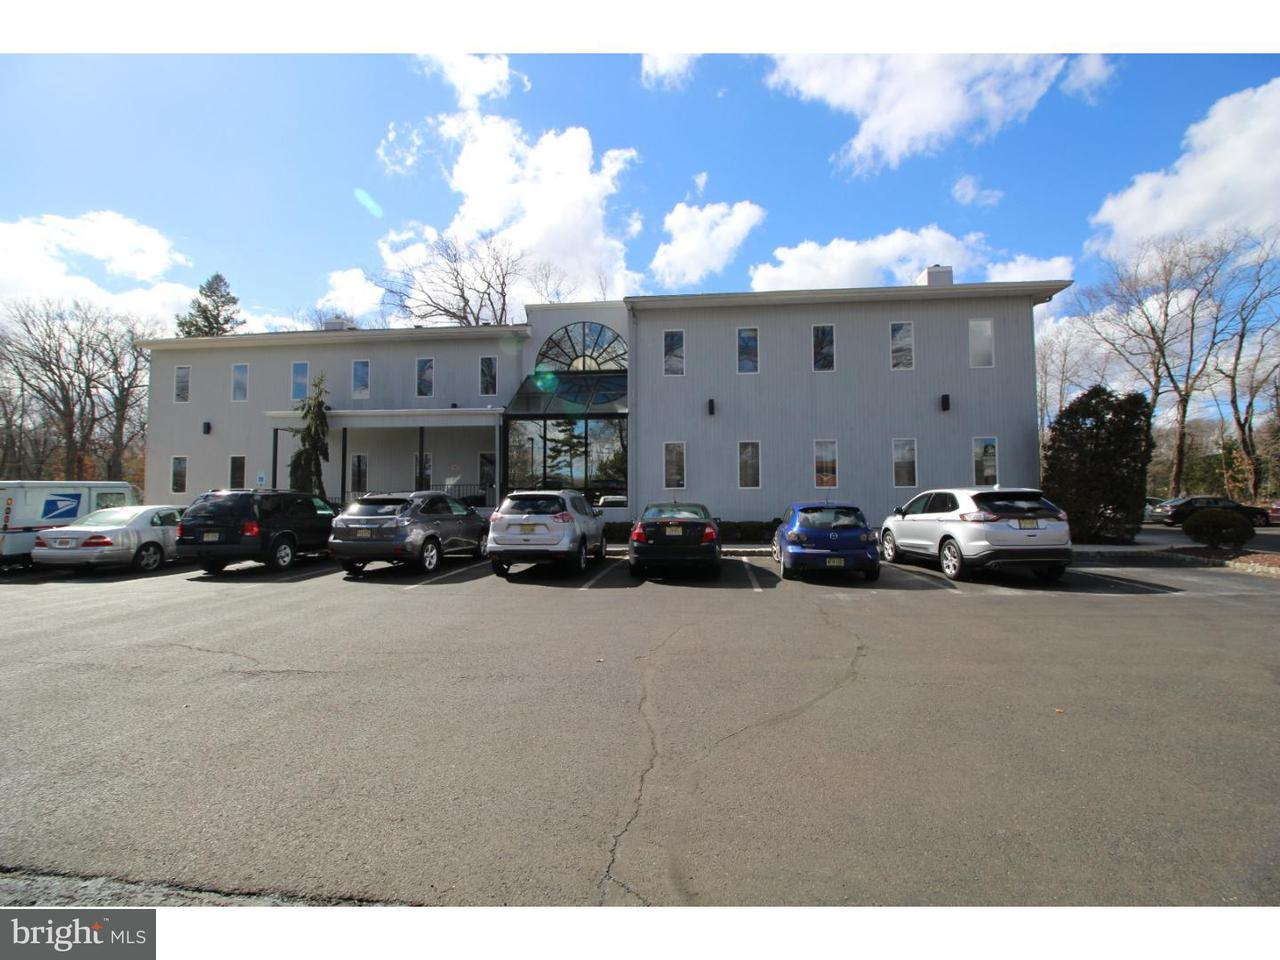 Single Family Home for Sale at 193 ROUTE 9 #STE 2A Englishtown, New Jersey 07726 United States